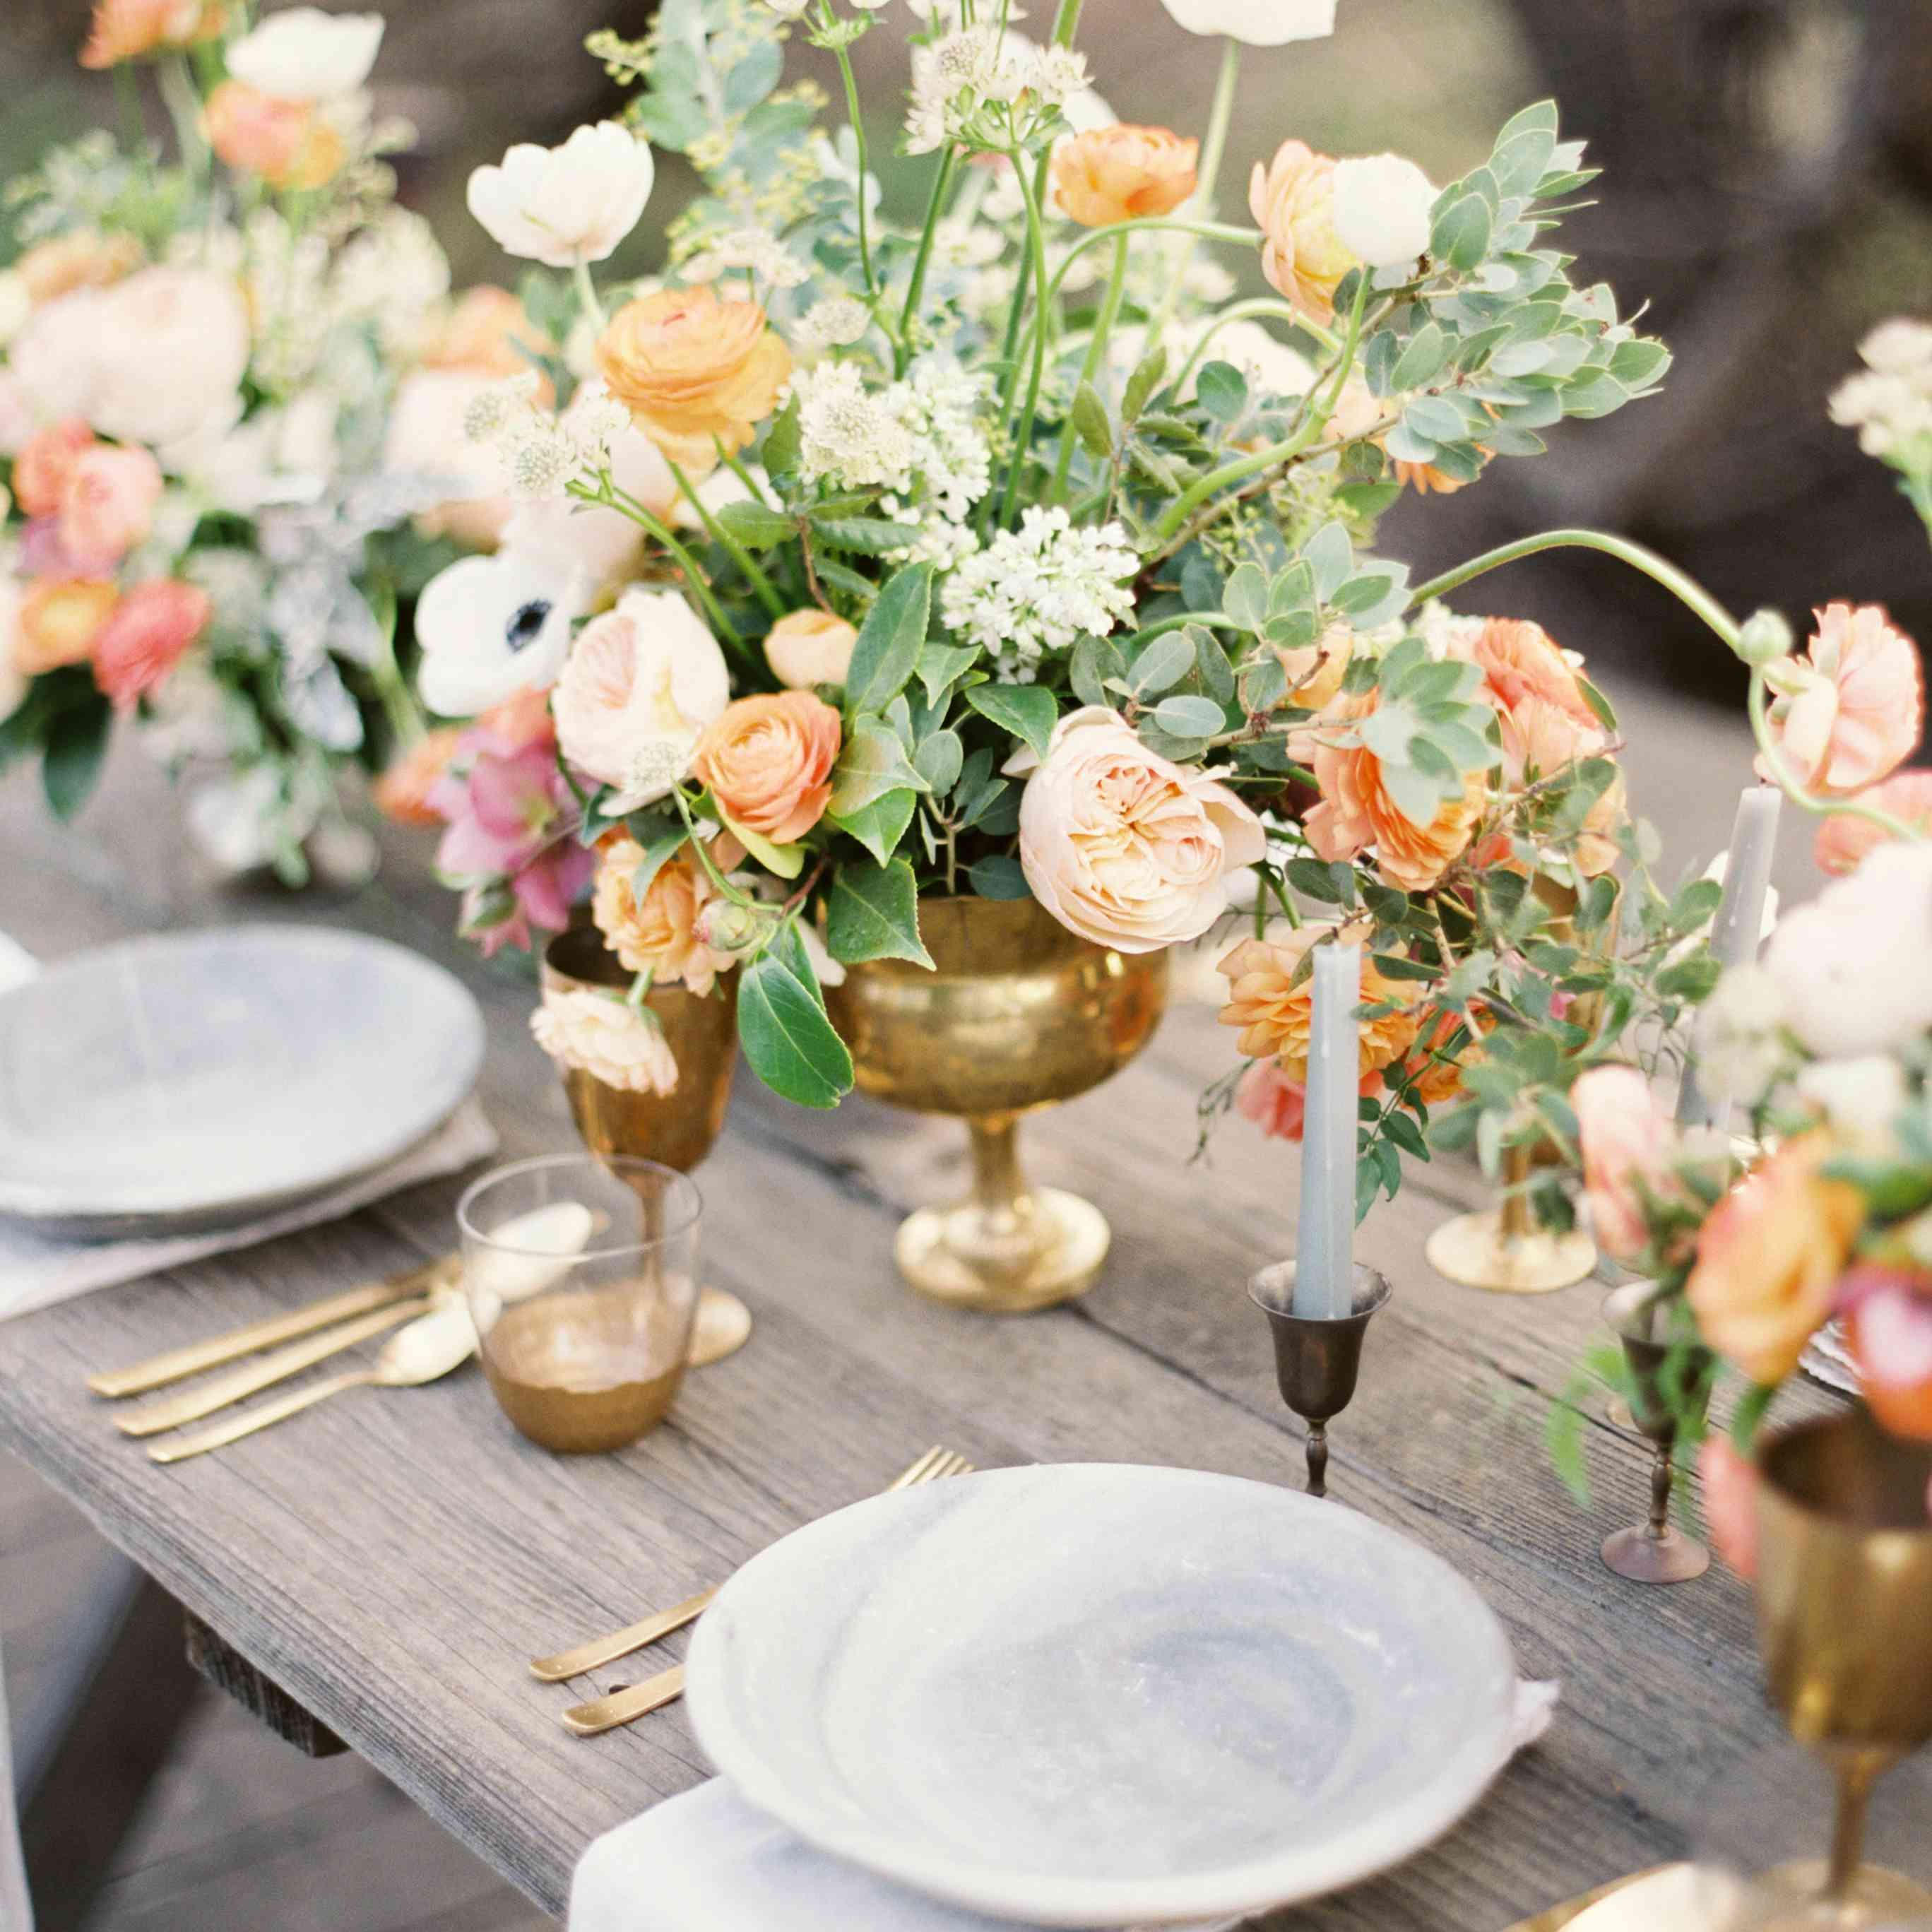 25 Tablescapes That Give Us Spring Fever